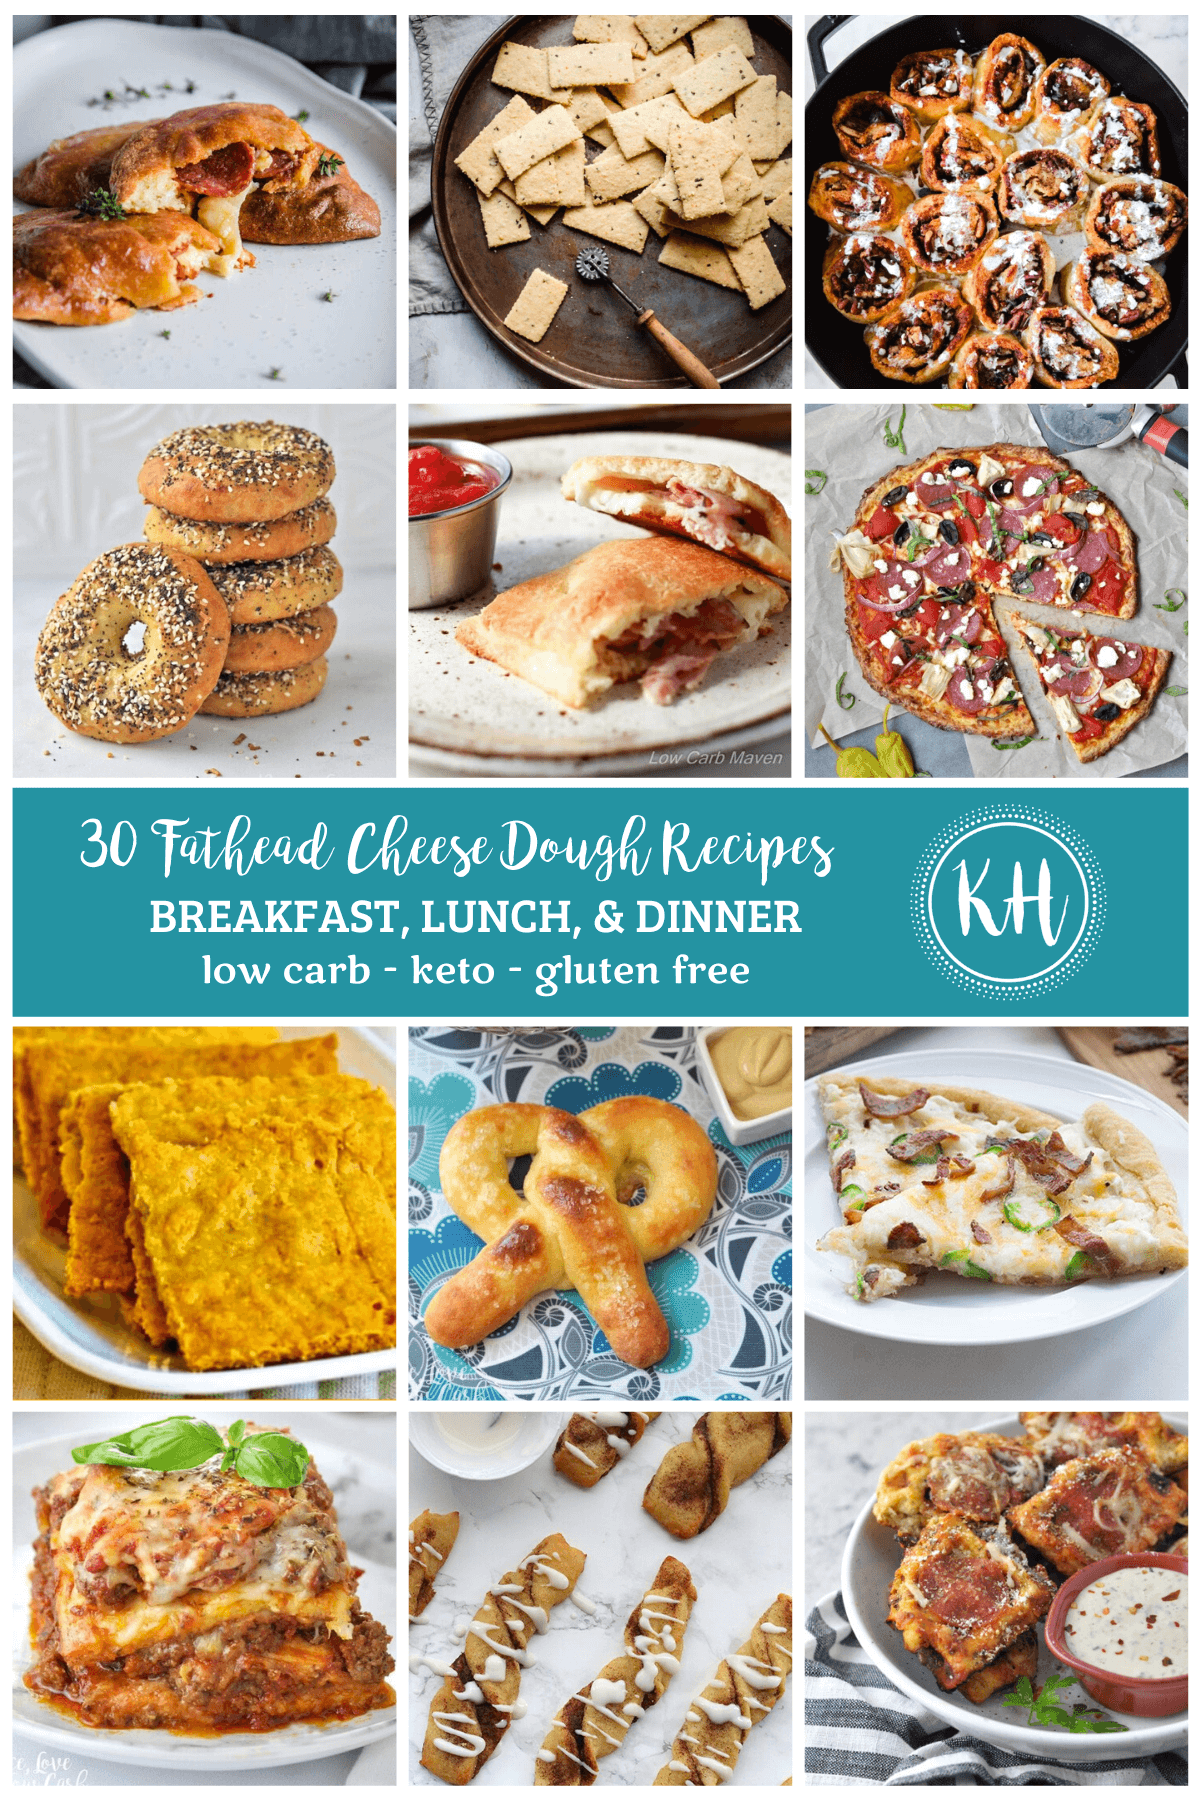 12 square images of fathead cheese dough recipes, stacked with a light teal banner in the center.